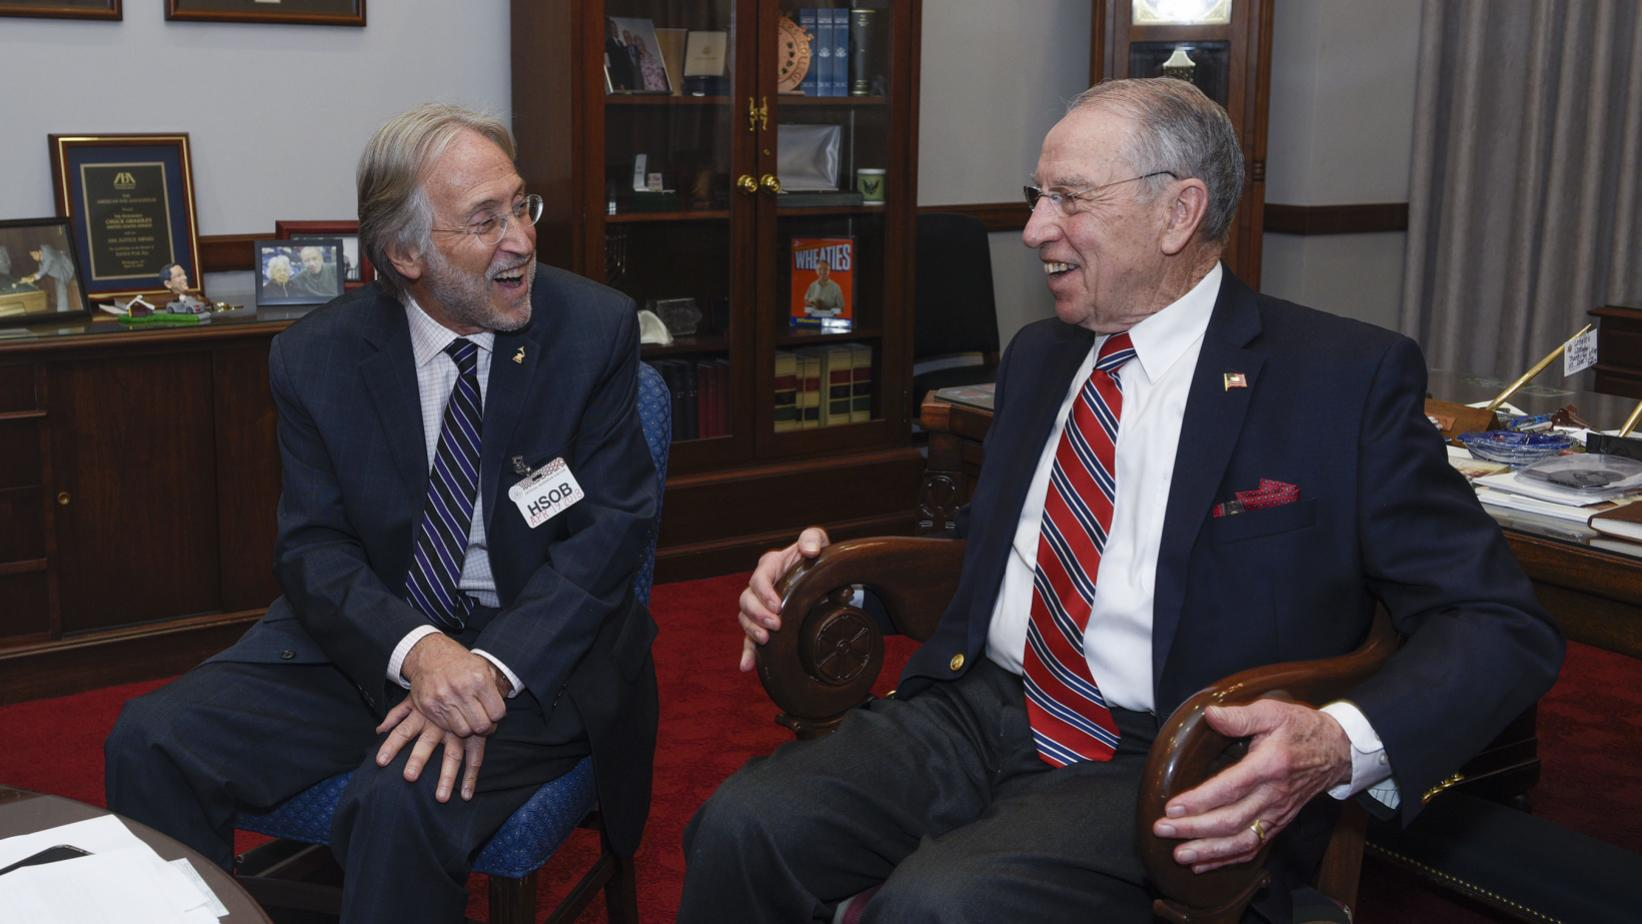 Neil Portnow and Sen. Chuck Grassley